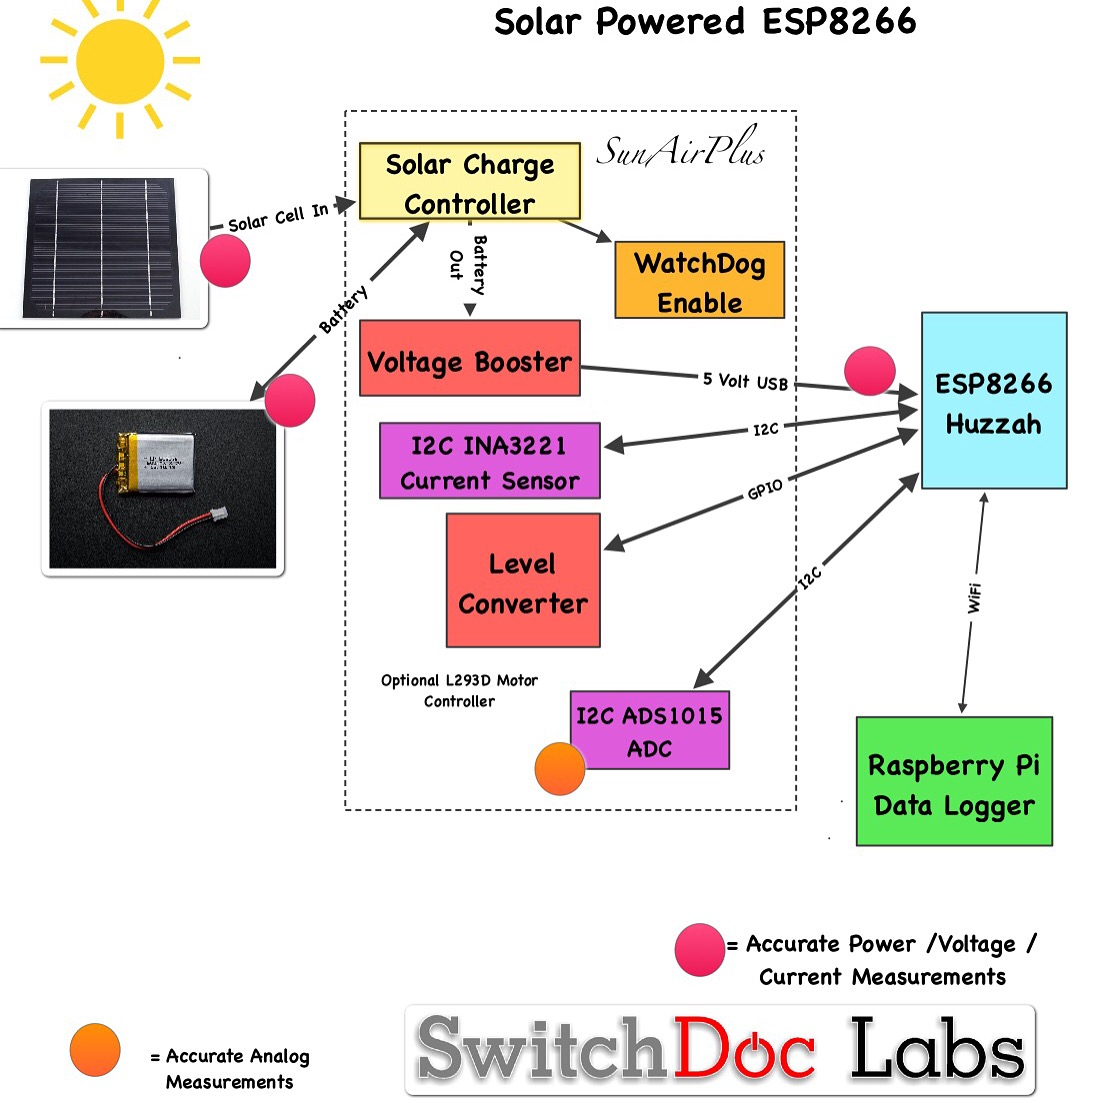 solarpoweresp8266 is an iot system built by switchdoc labs for an upcoming article on building iot devices it consists of five major pieces